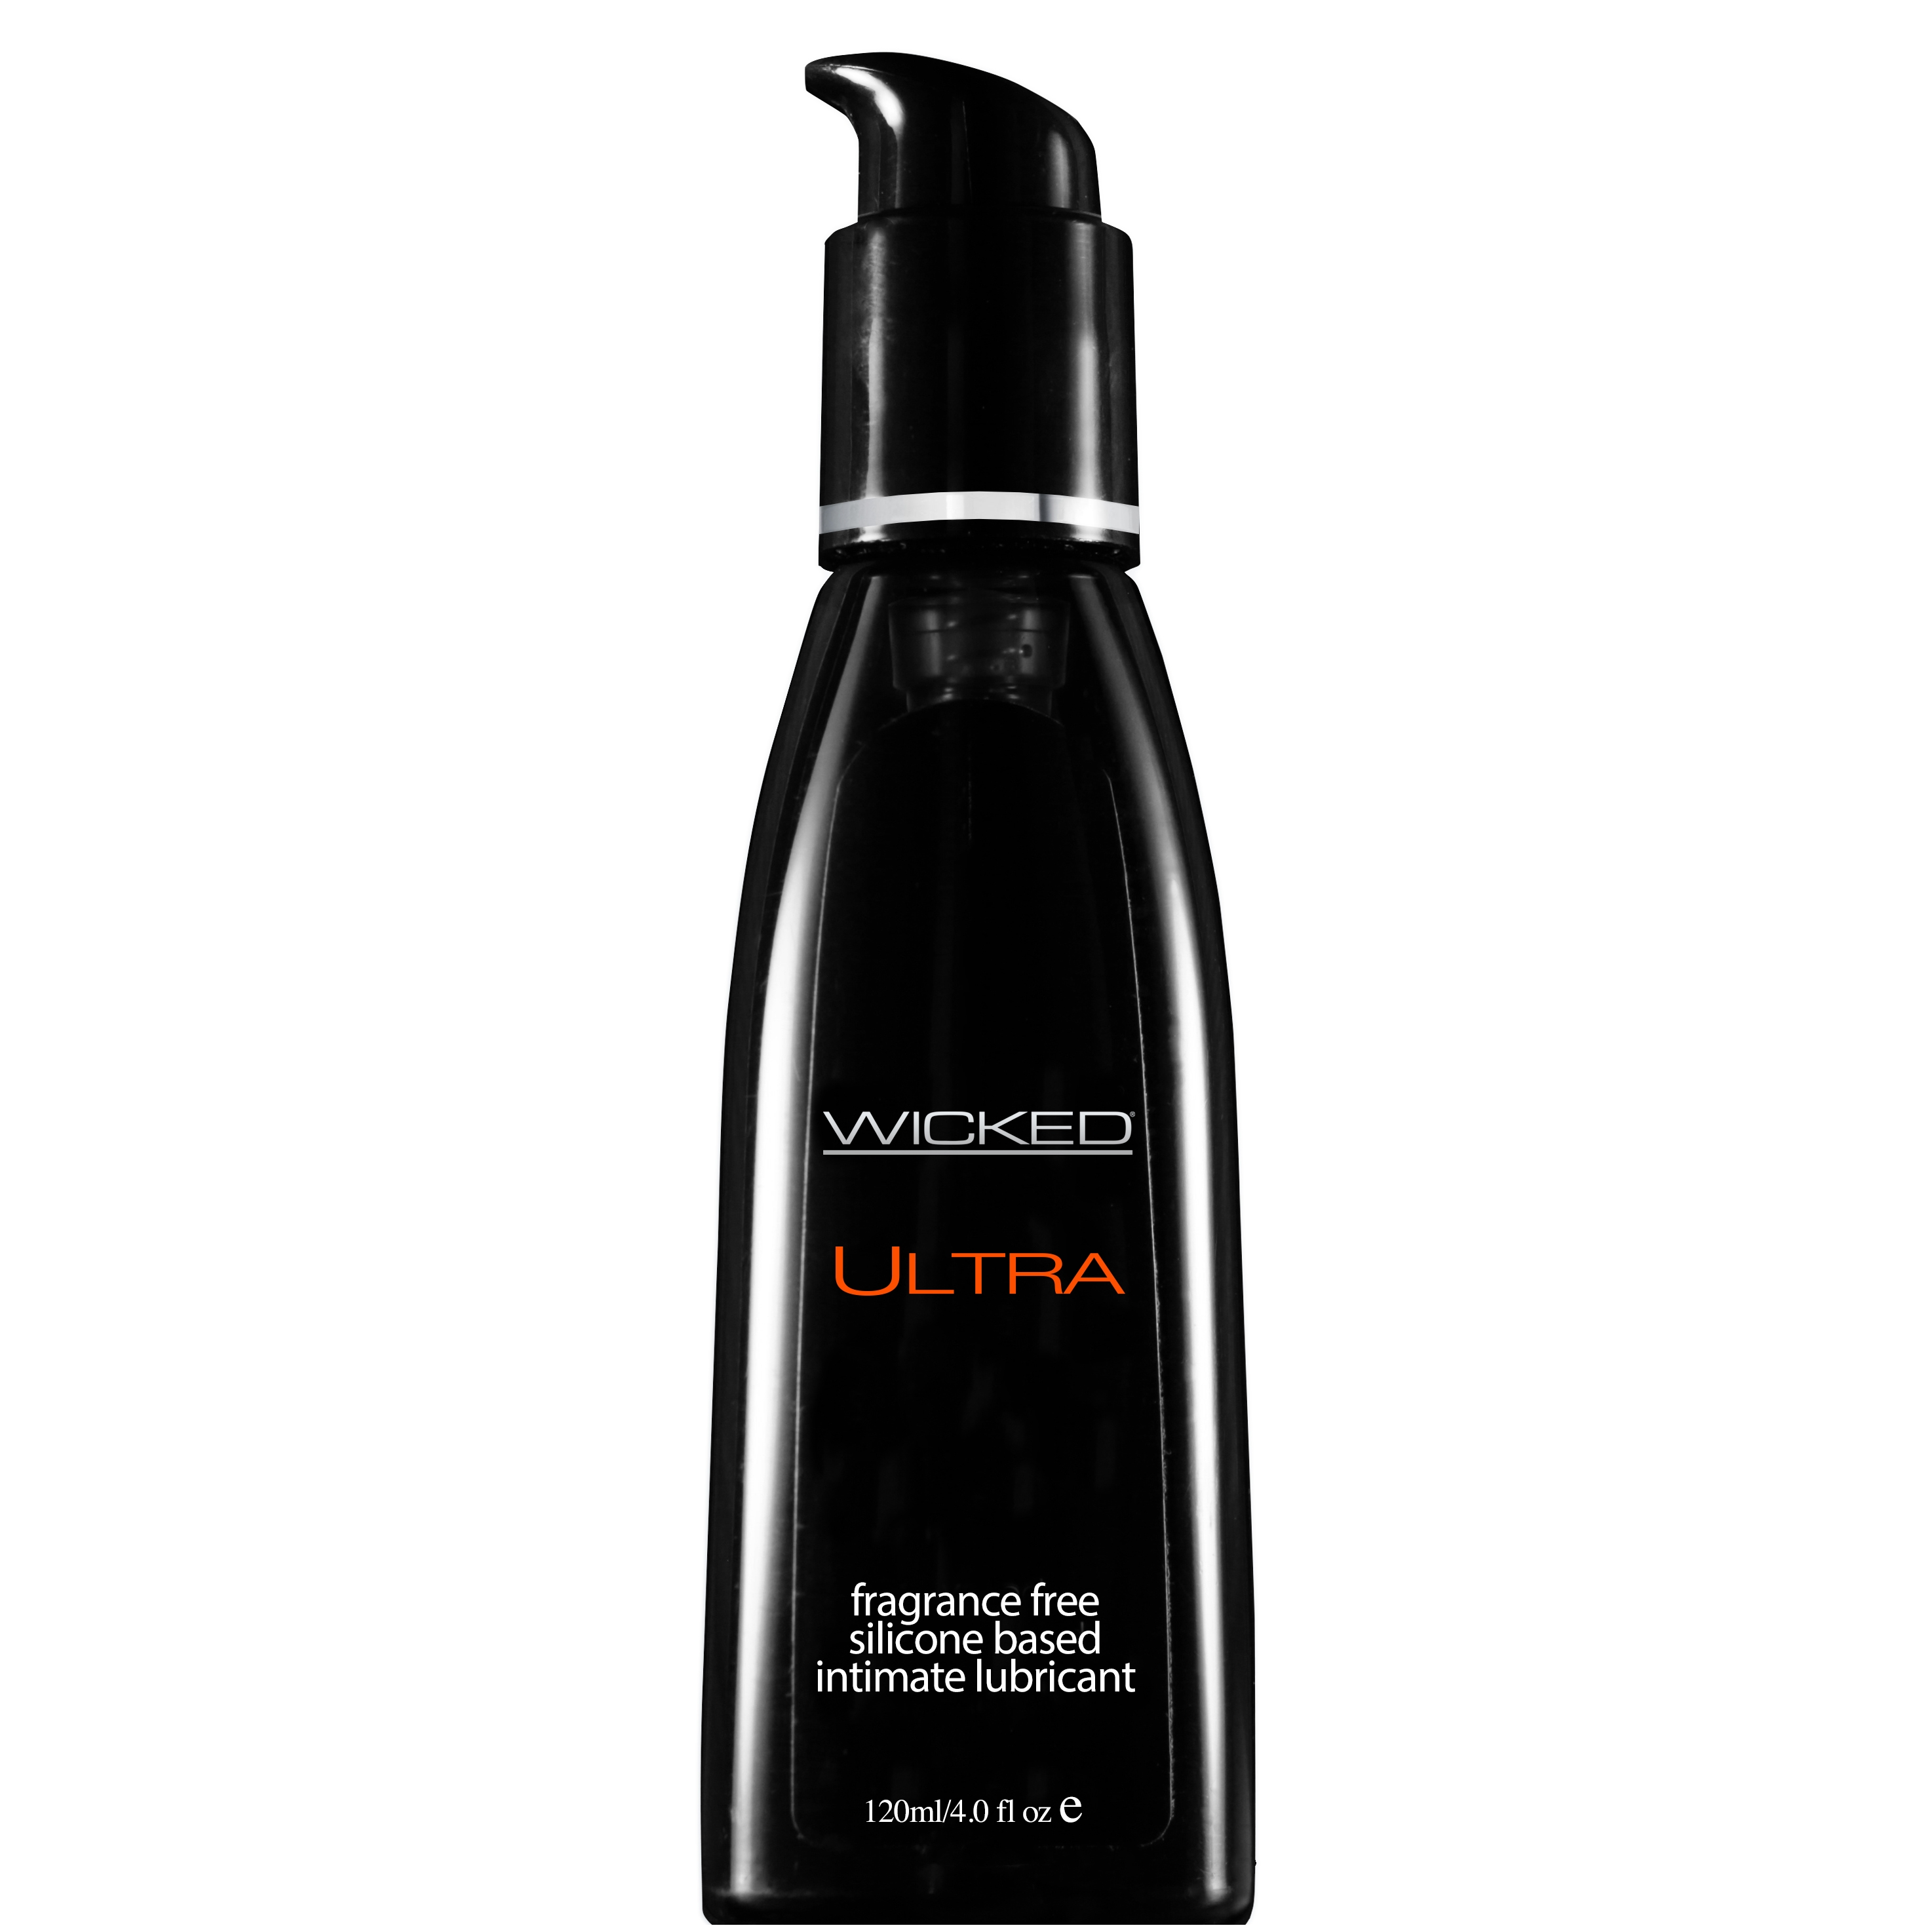 ULTRA Fragrance Free Silicone Lubricant